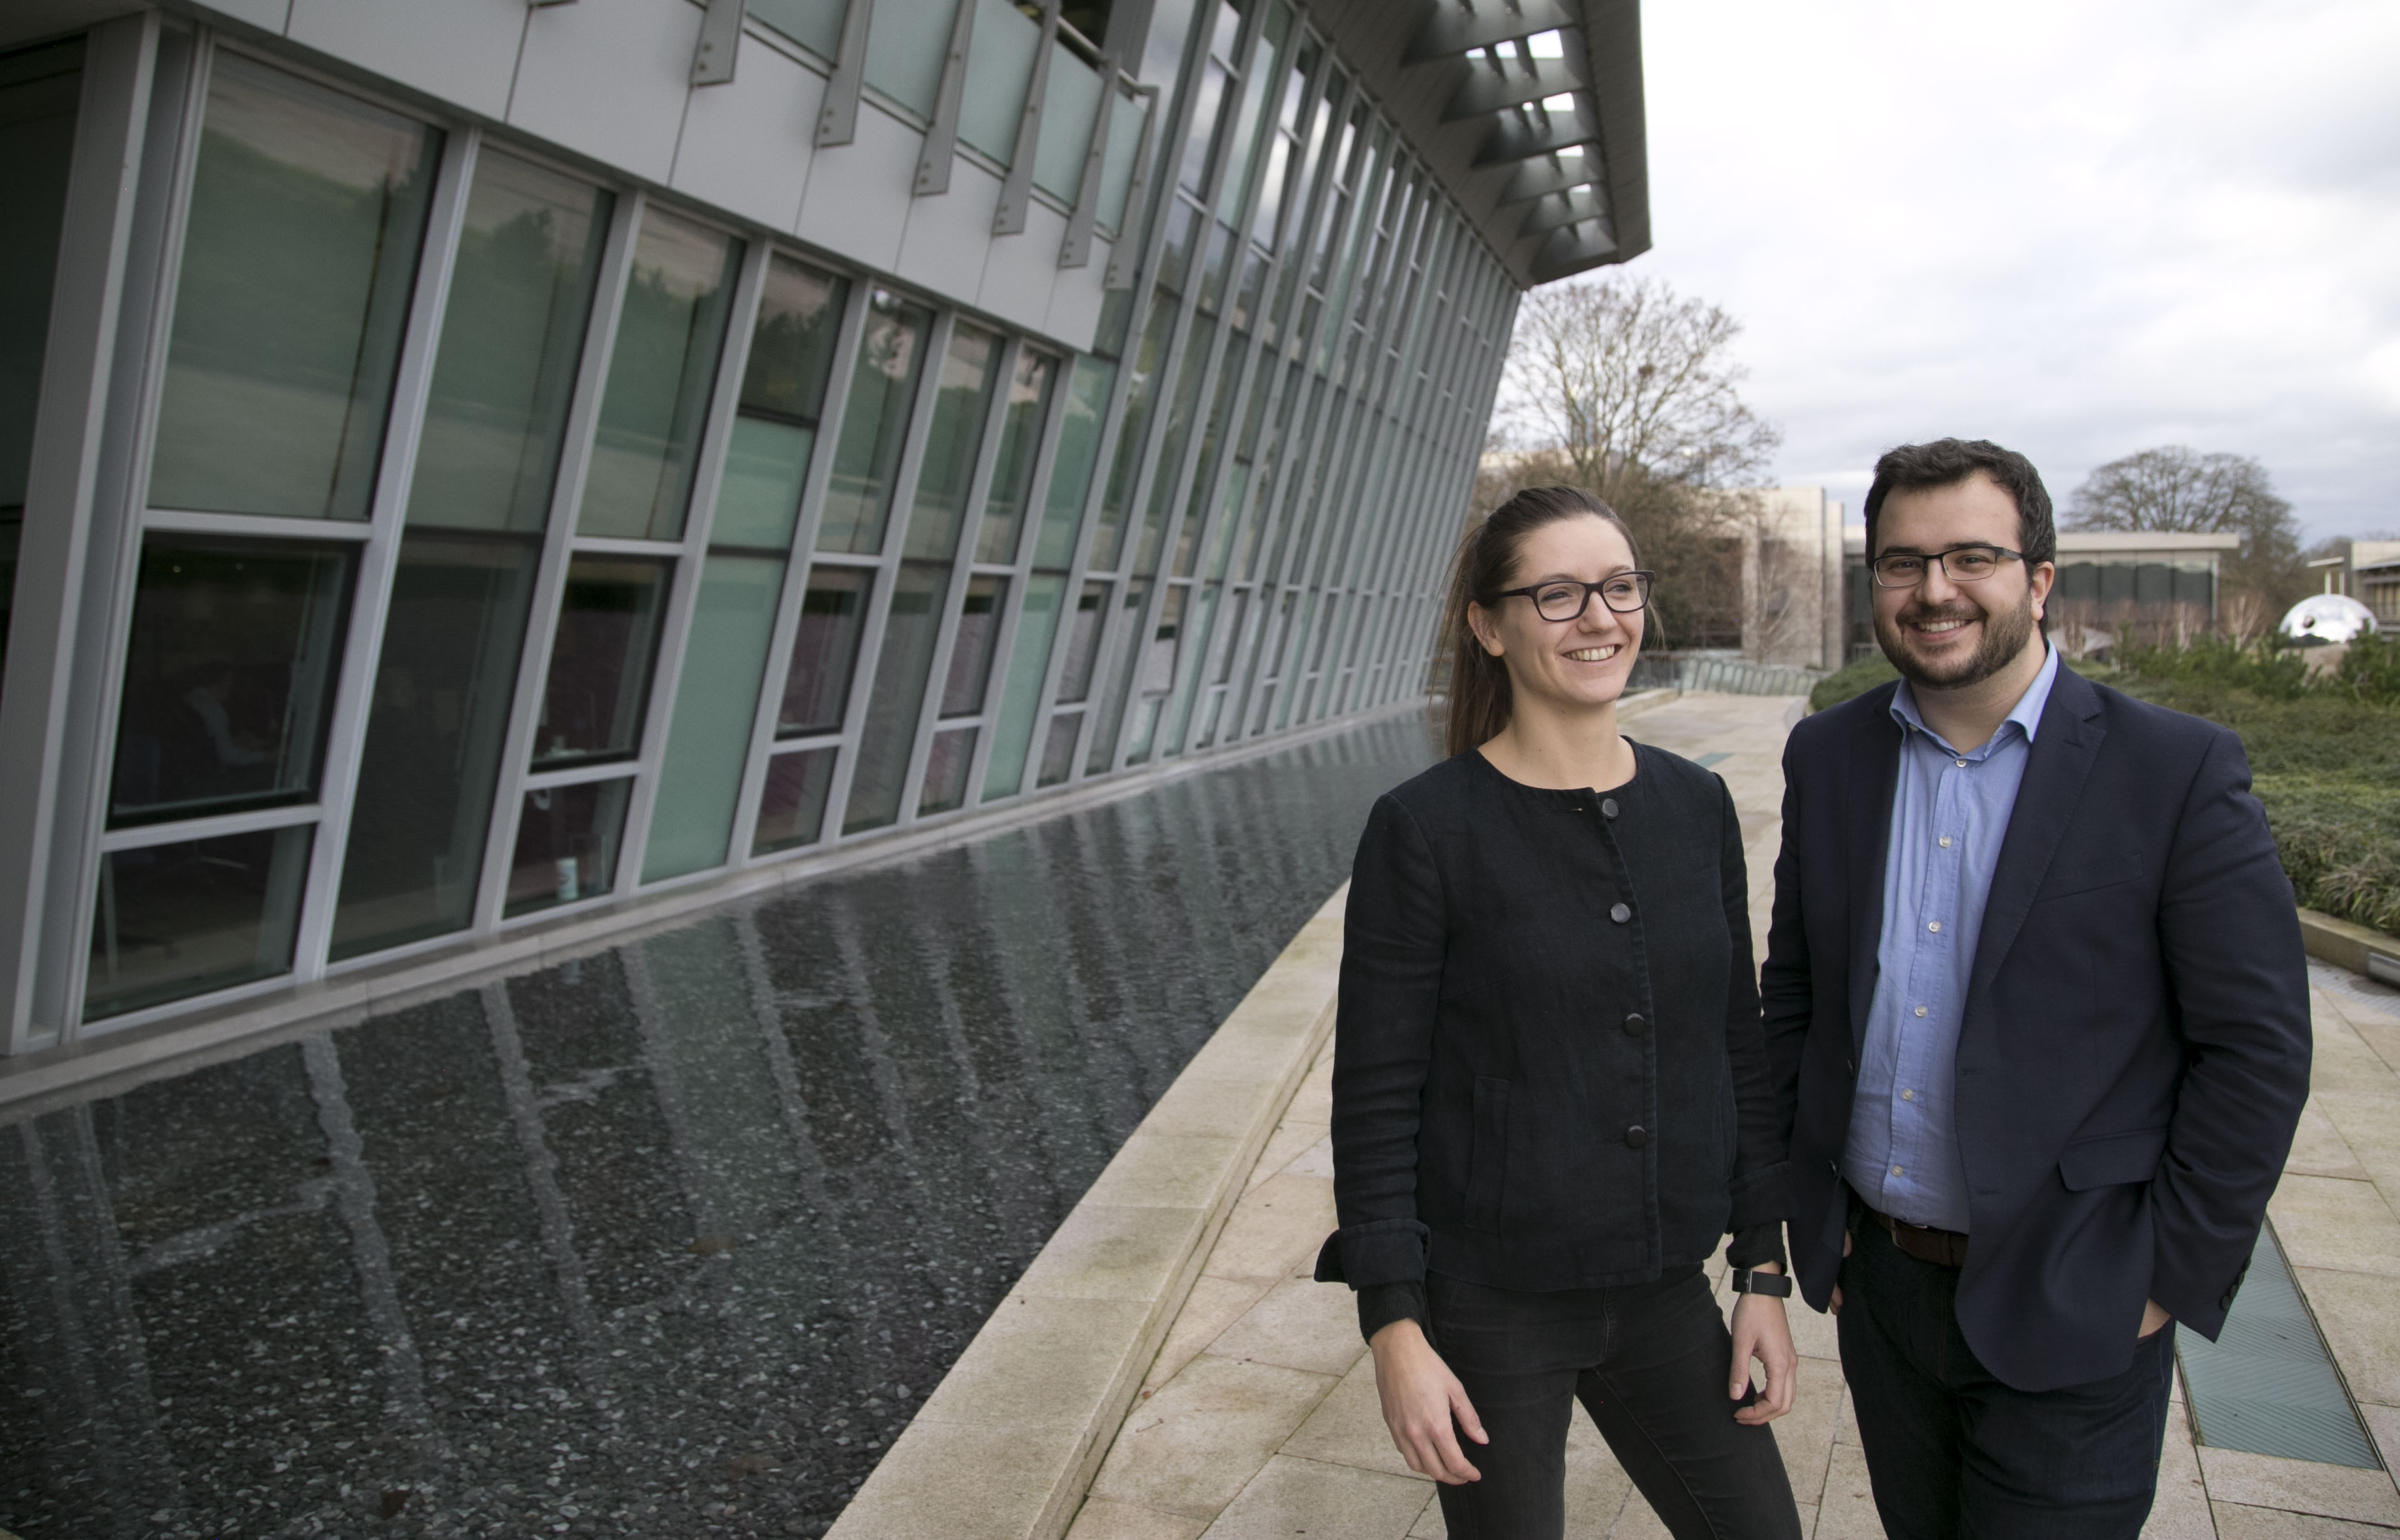 Gosia Trynka (left) and Charles Fracchia, BioBright CEO, outside of the Wellcome Sanger Institute building in Cambridge, UK